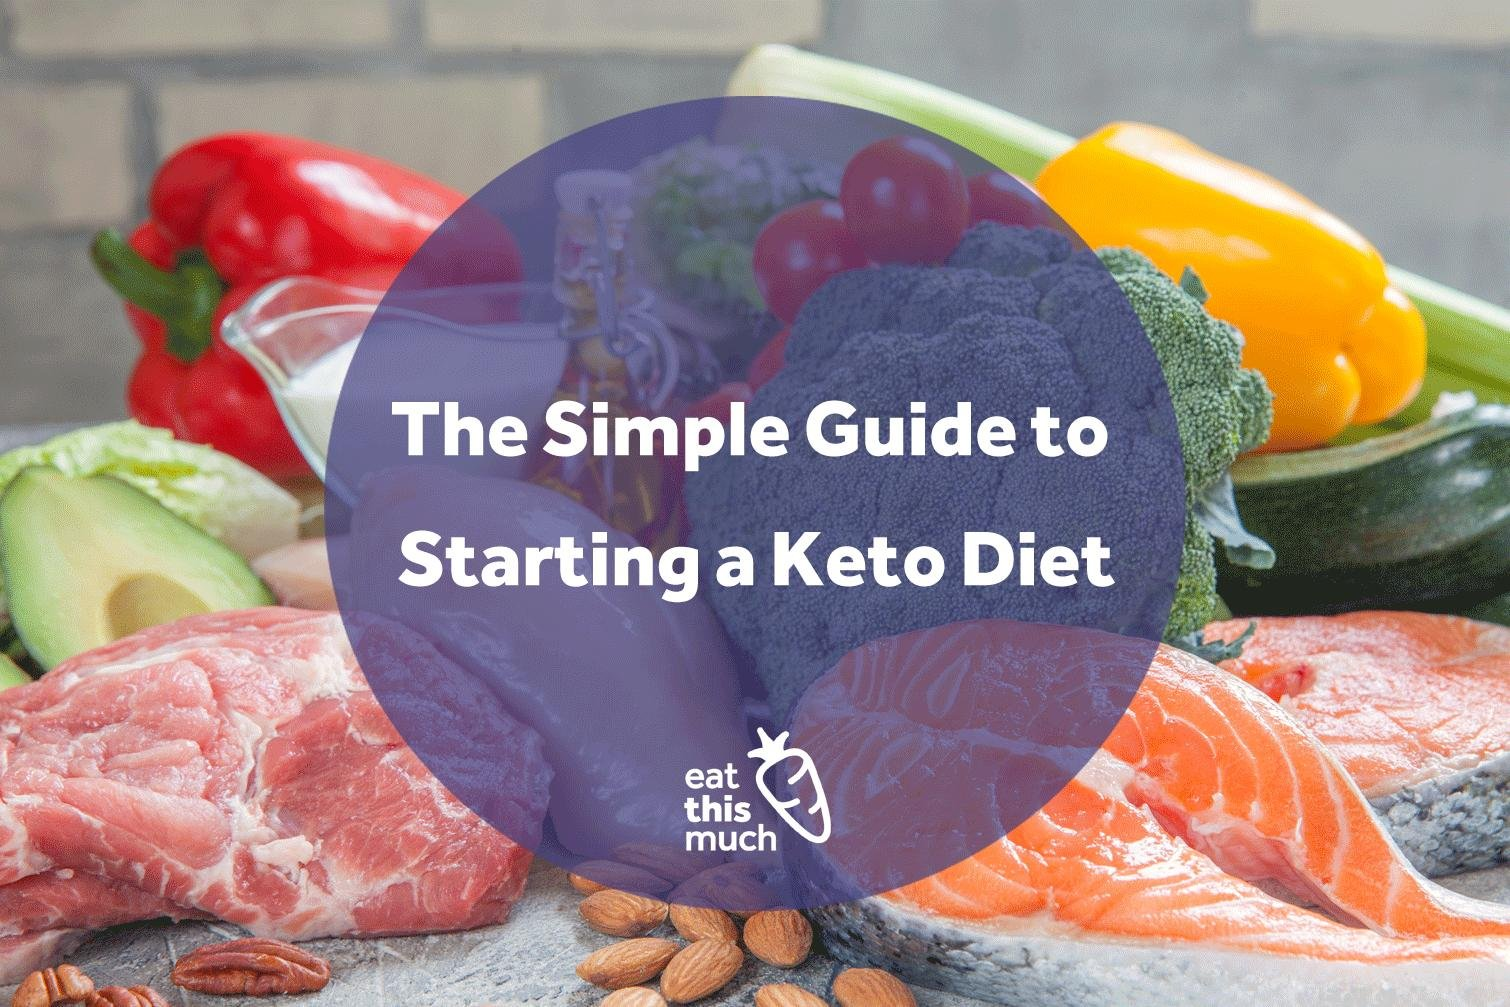 A Simple Guide To Starting A Ketogenic Diet